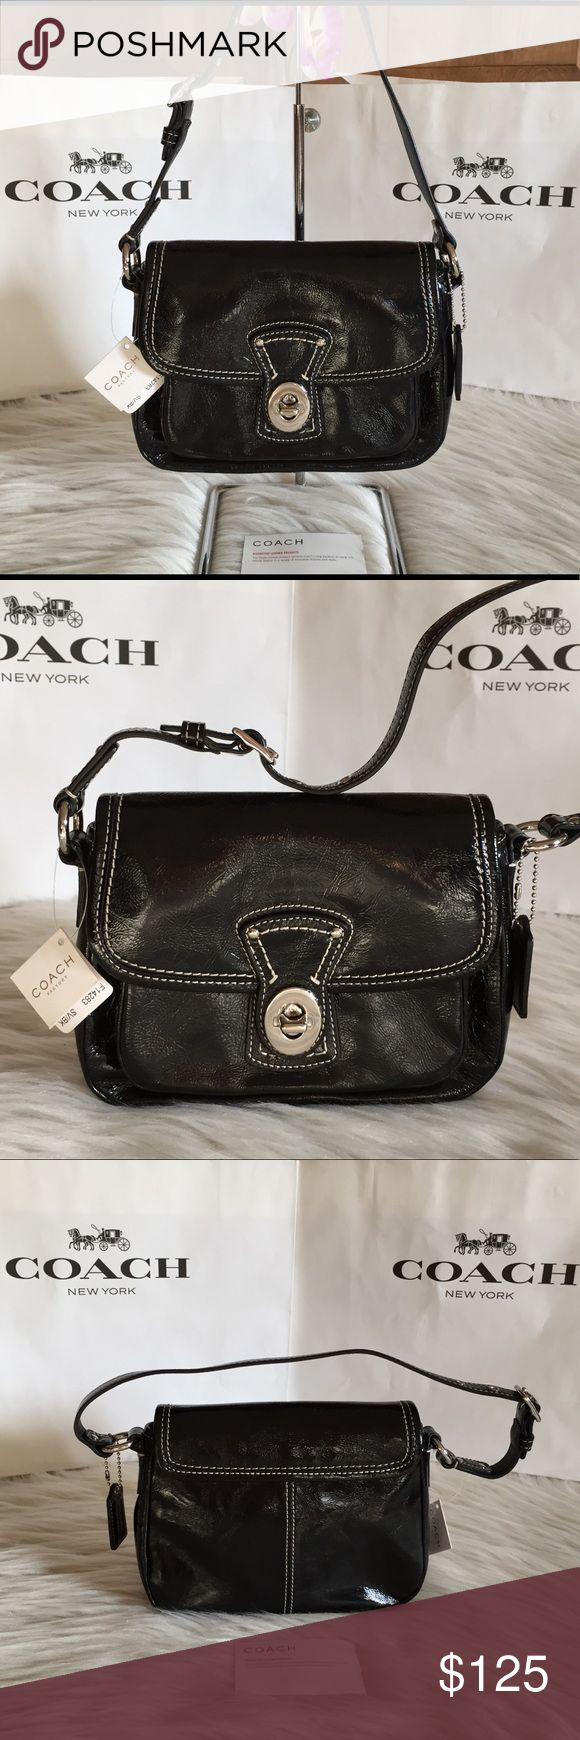 NWT Coach Black Patent Leather Penny Shoulder Bag NWT Coach Black Patent Leather Penny Turnlock Small Shoulder Bag Handbag, style 14283. This is an adorable small shoulder / hand bag that is perfect for quick errands, a night out, or if you prefer a smaller sized bag. It is similar in size to a Coach Dinky. Shiny black patent leather with a front pocket located beneath the flap turnlock closure. Soft blue interior with 2 slip pockets. New and never used. PLEASE READ FRAUD PROTECTION POST…